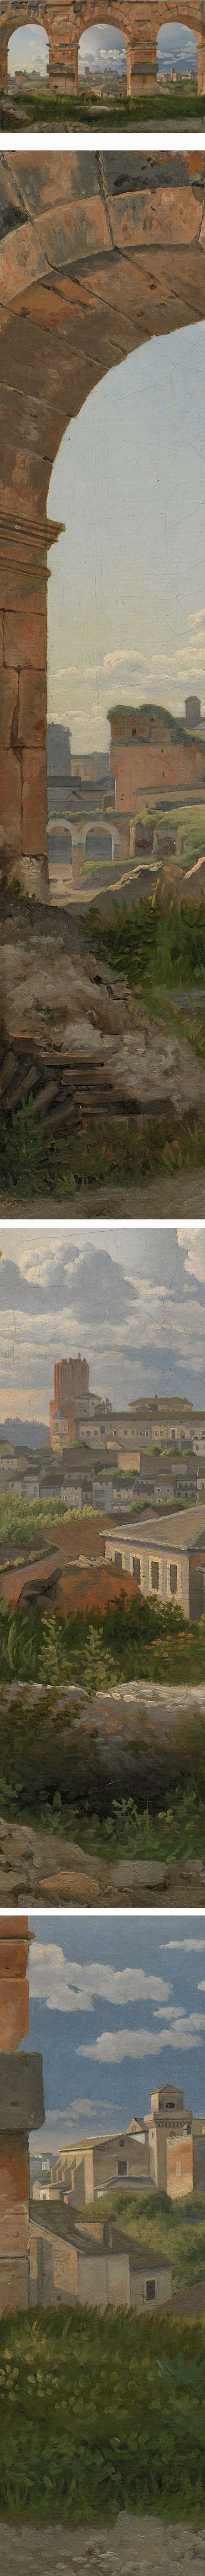 Eye Candy for Today: Eckersberg's view through arches of the Colosseum